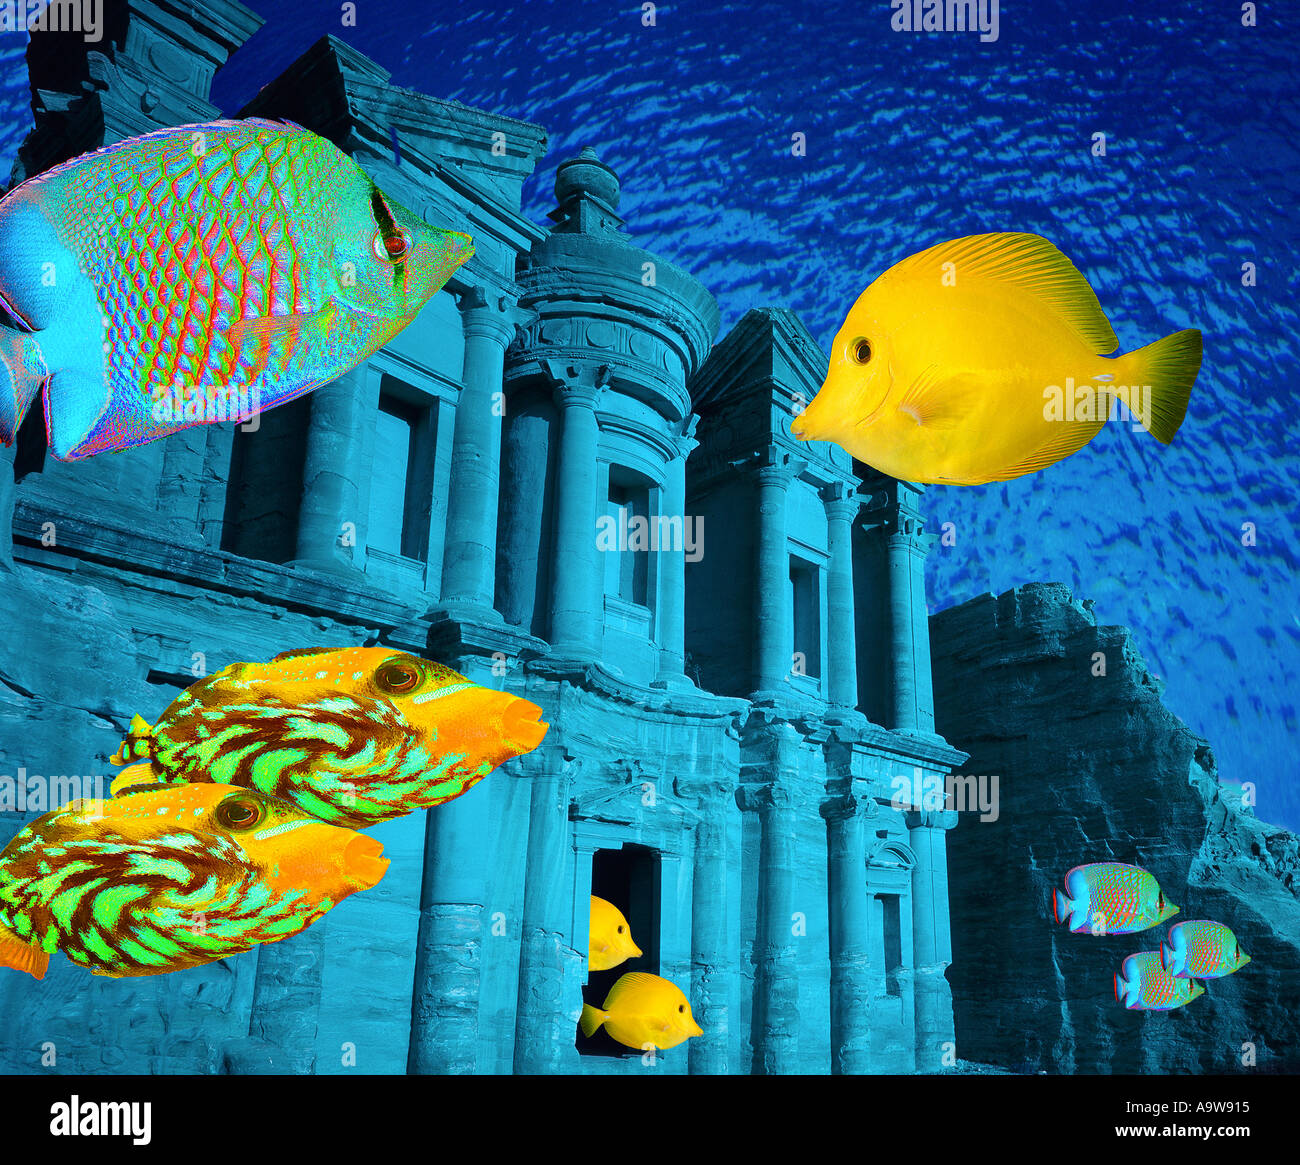 Underwater civilization (ruins of Petra, Jordan) - Stock Image